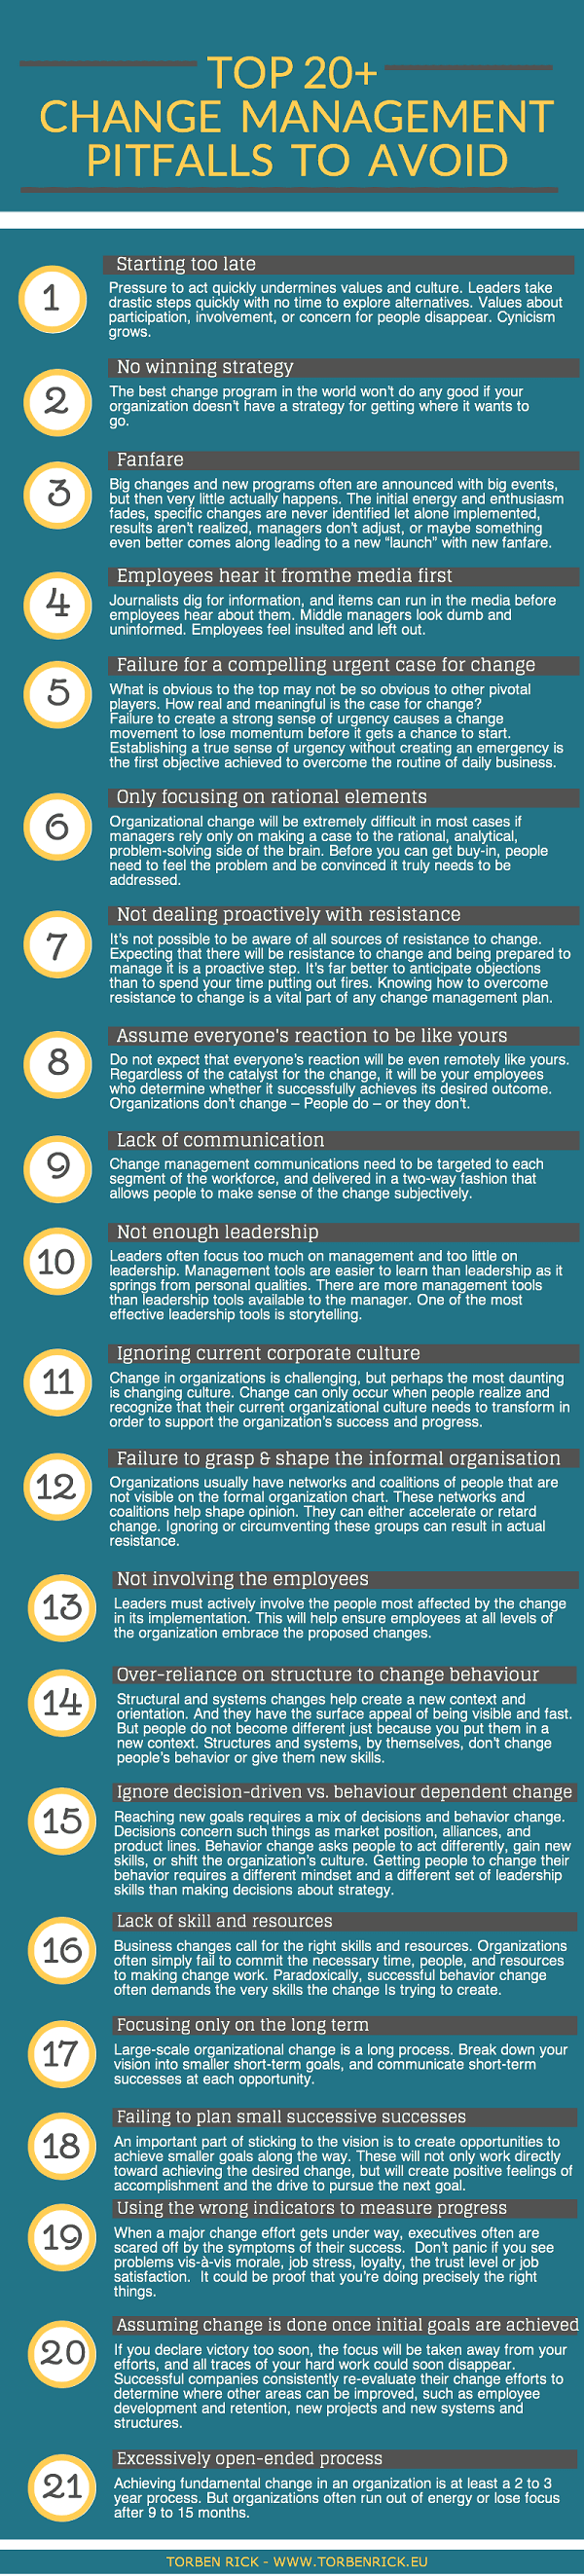 Top 20+ organizational change management pitfalls